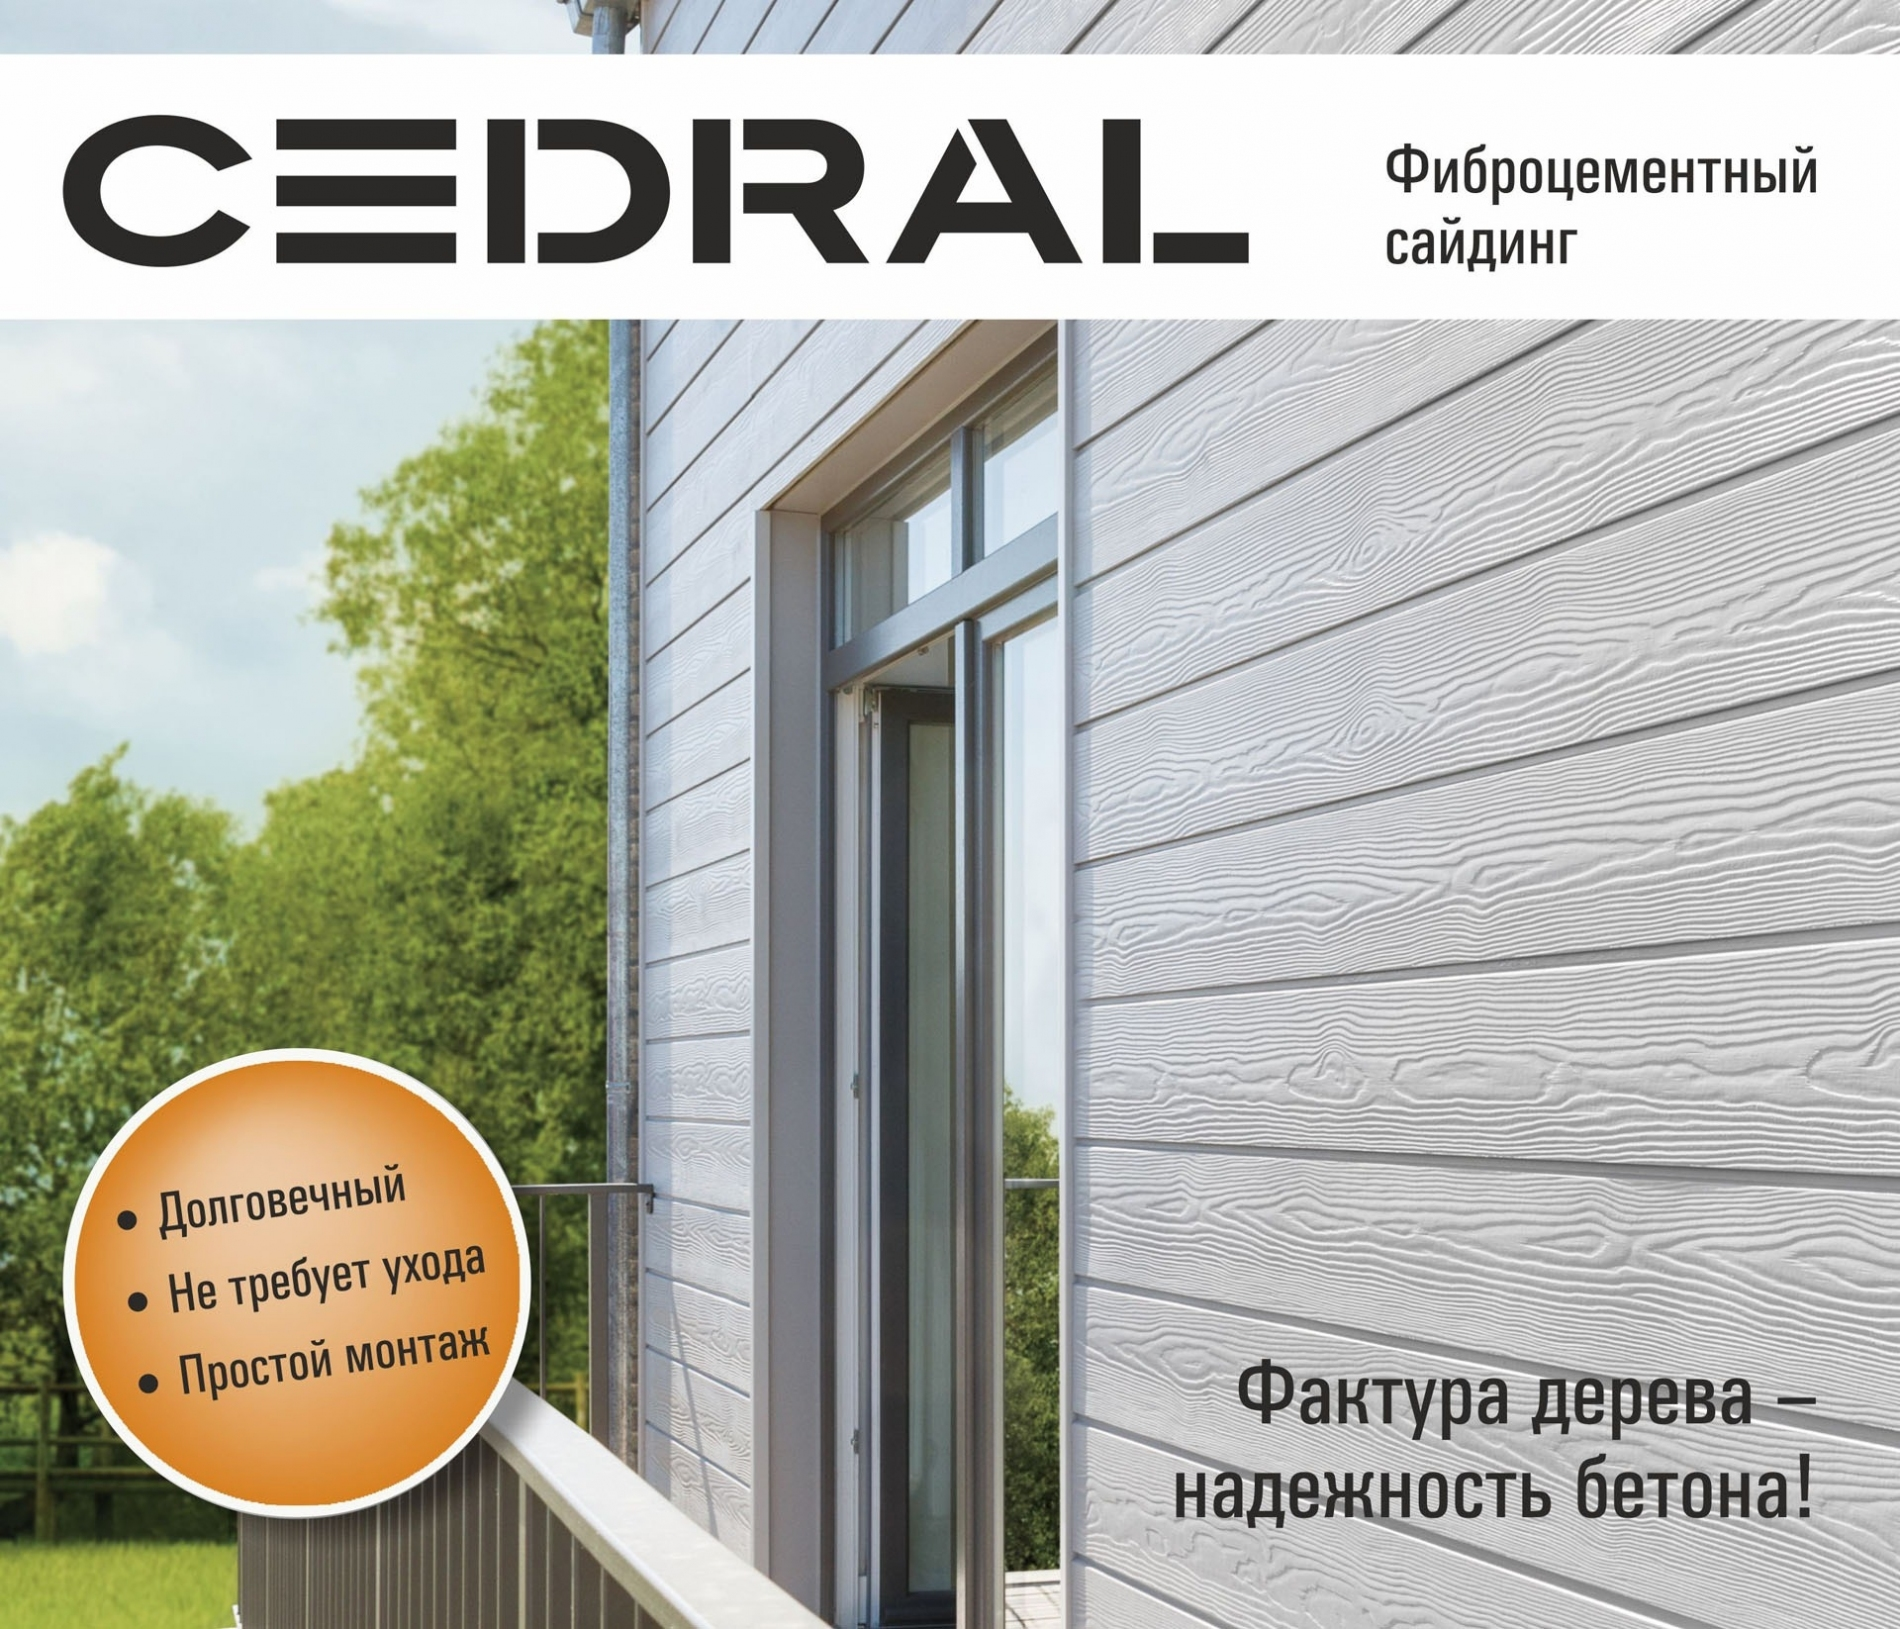 Cedral banner